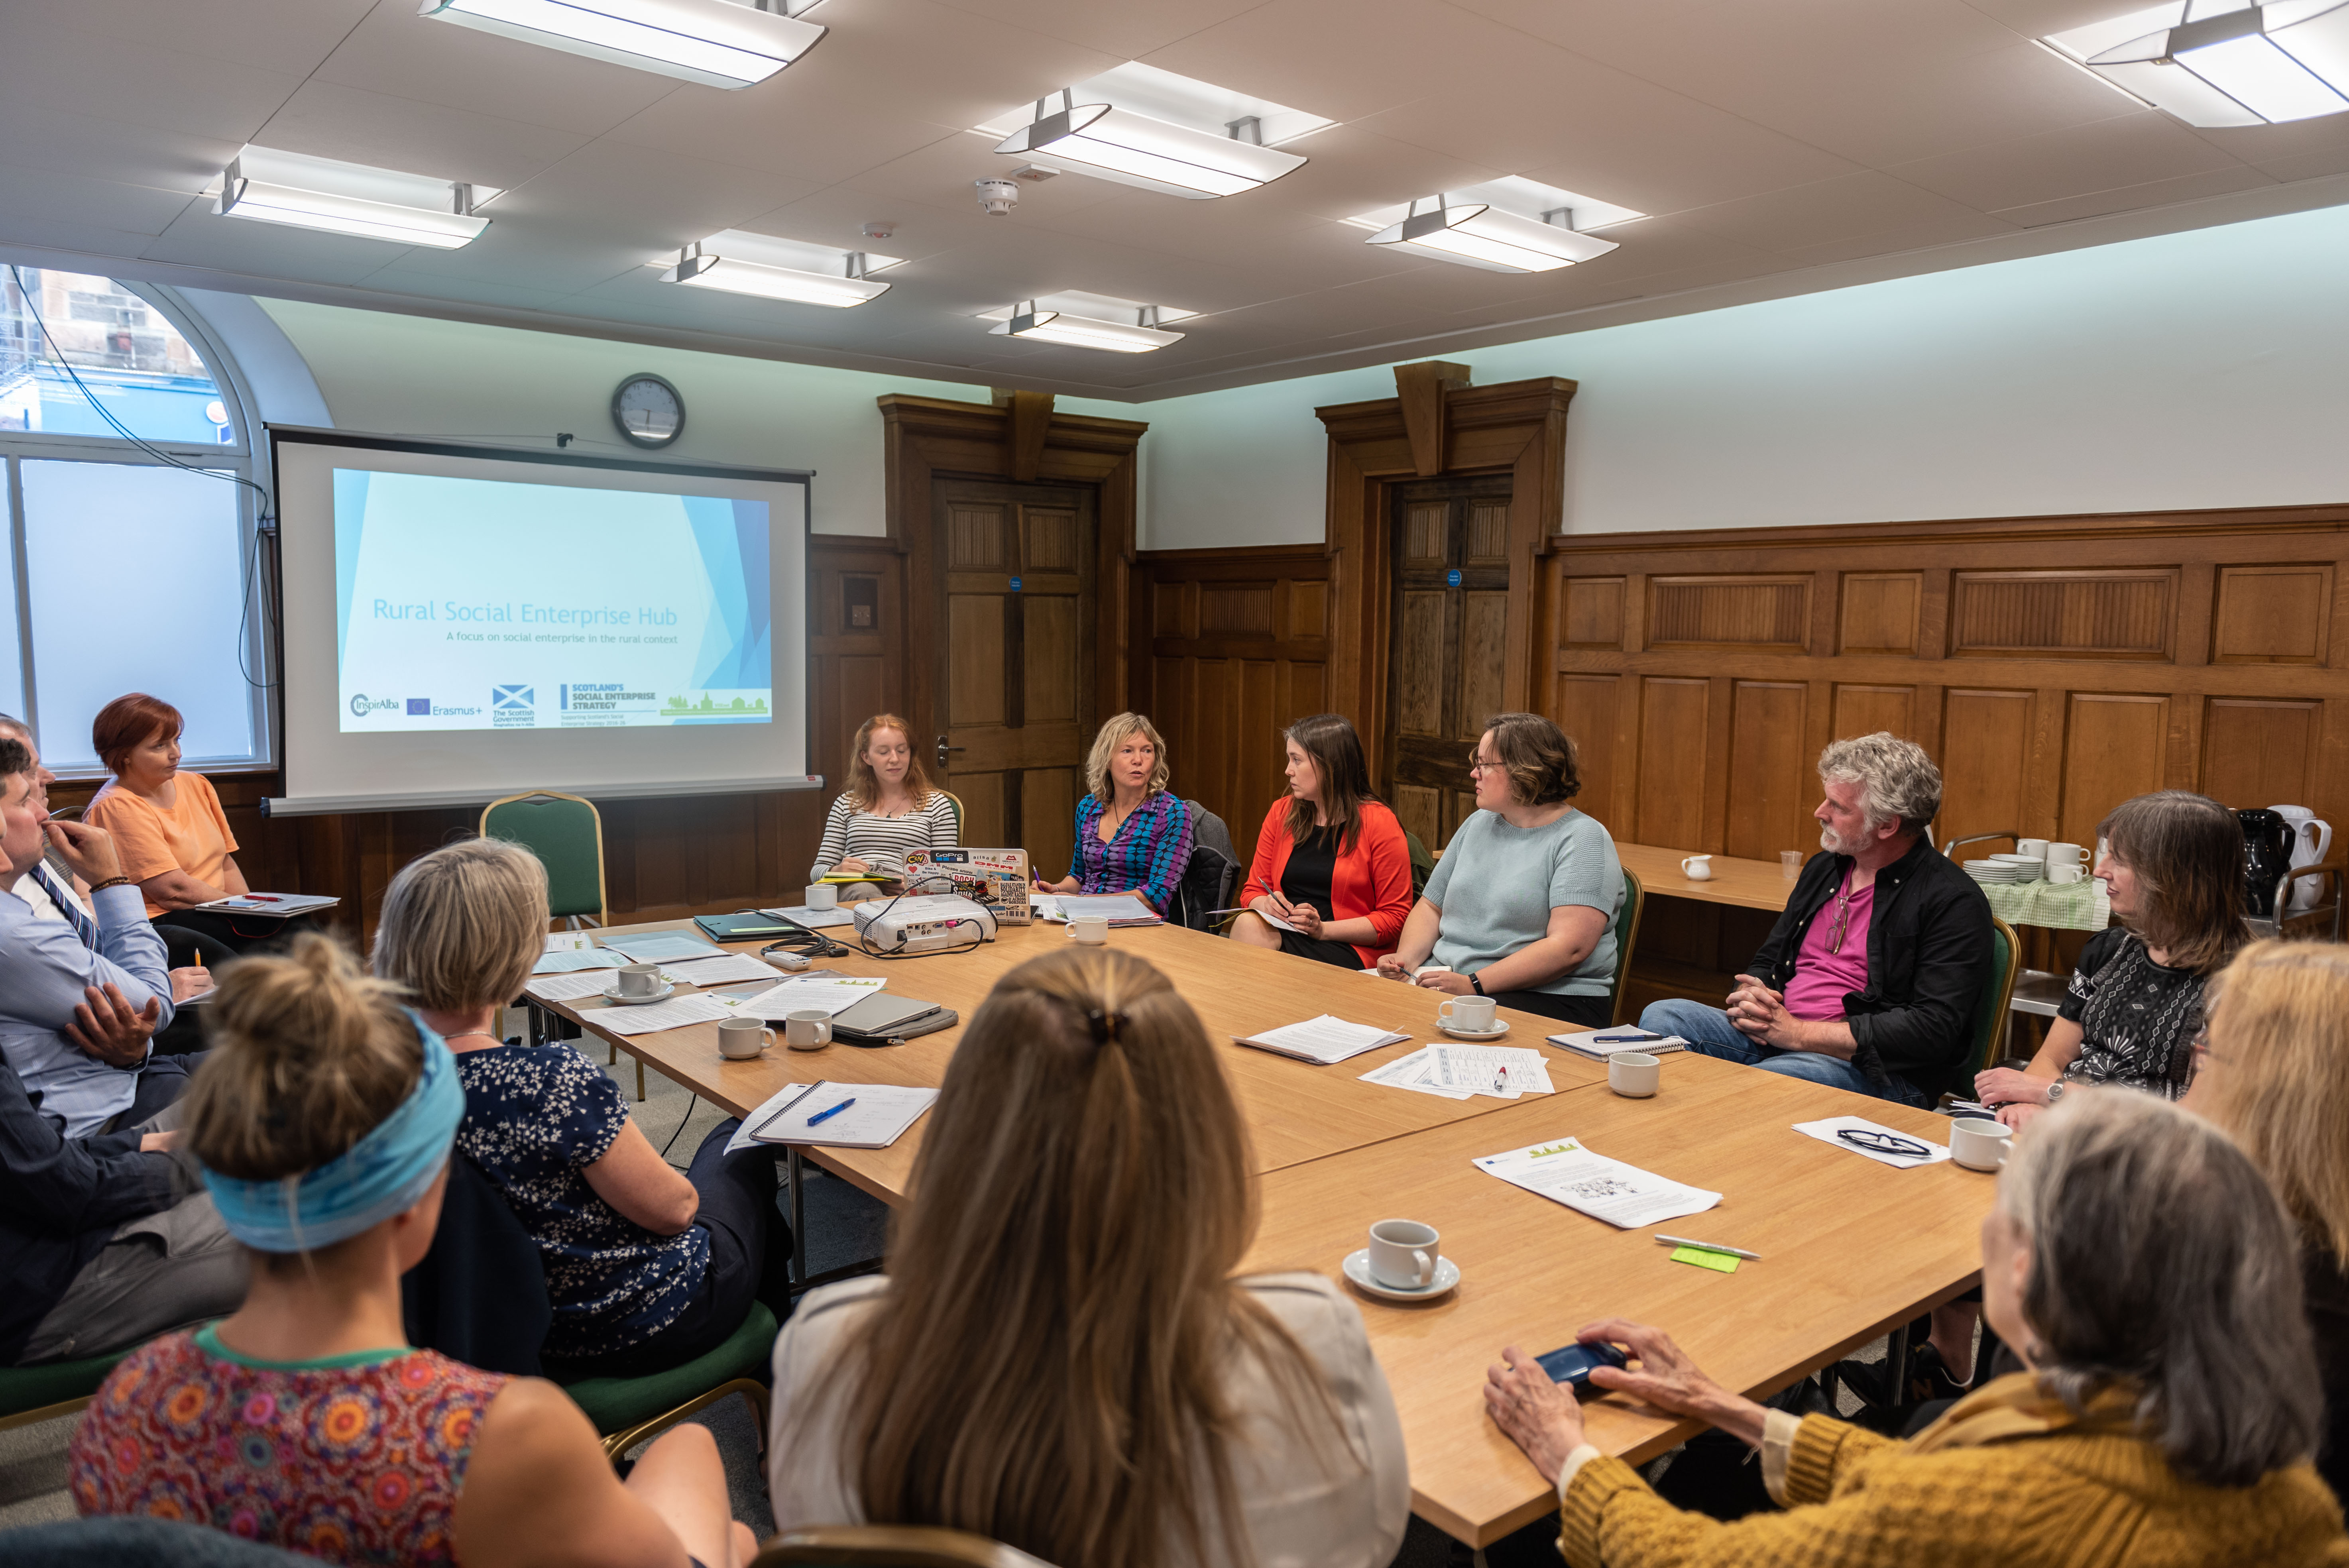 The Inspiralba working group meets to discuss the proposed rural hub for social enterprise in scotland